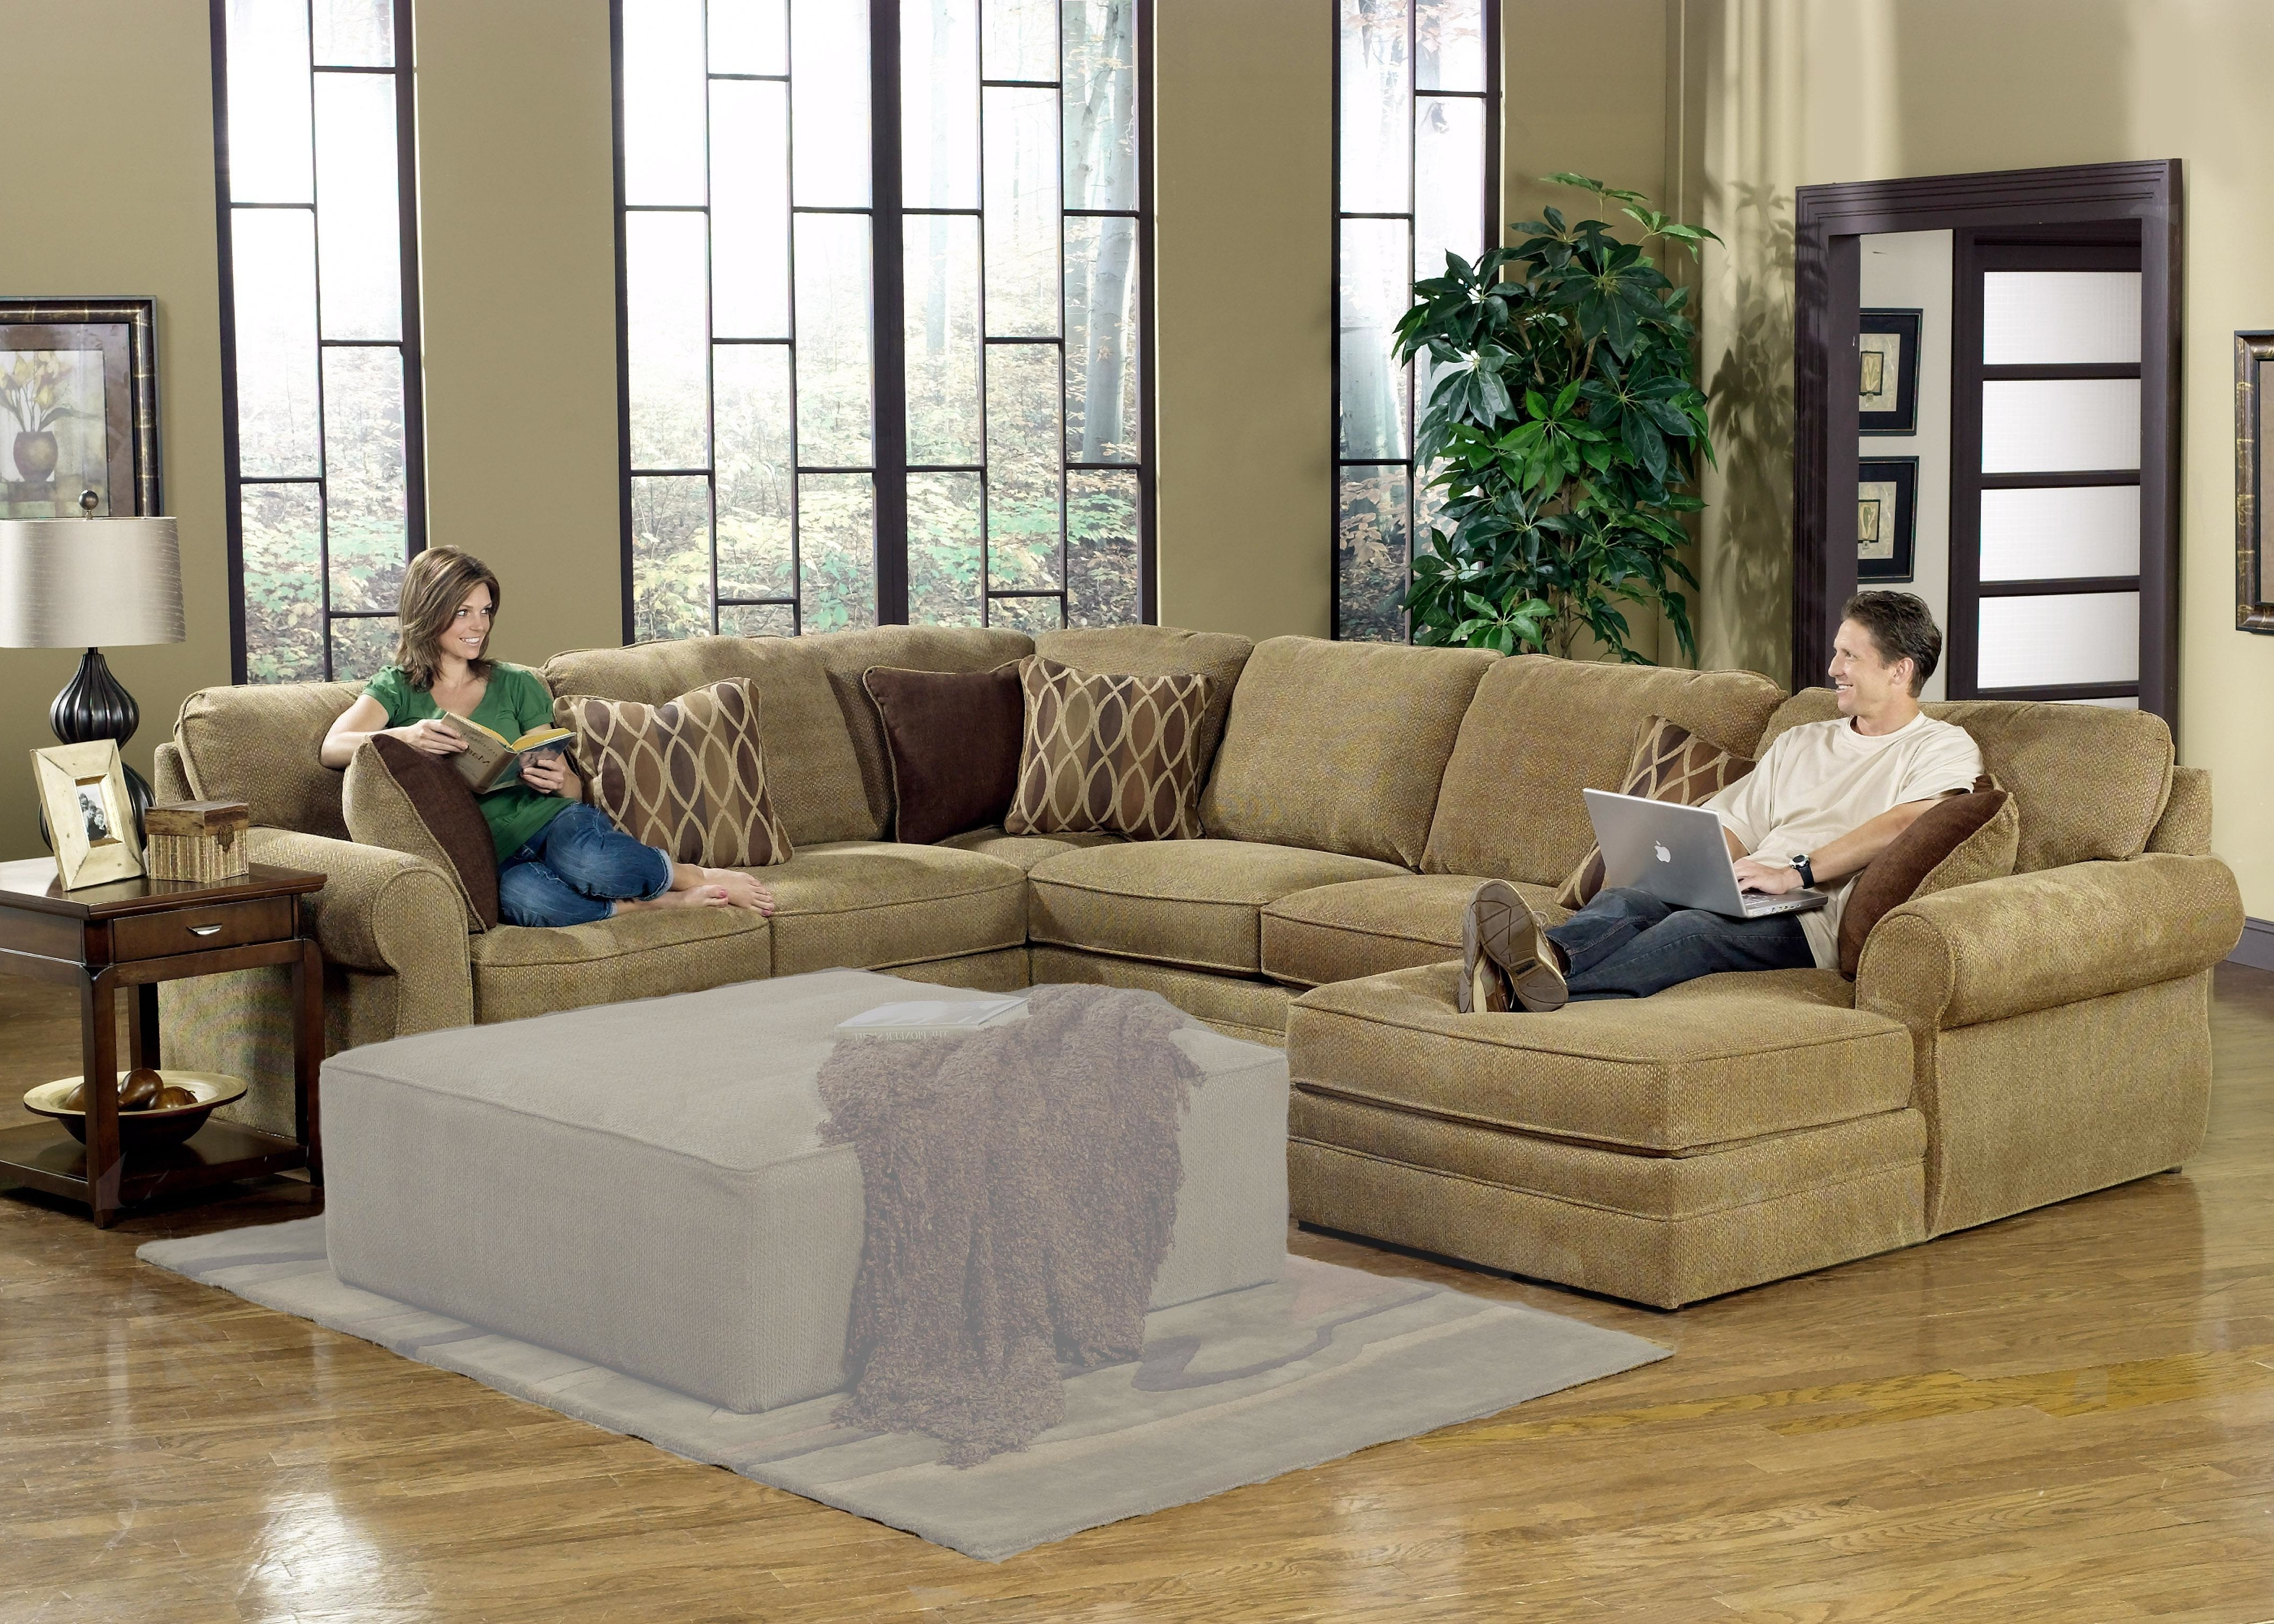 Sectional Sofas In Atlanta For Most Up To Date Cheap U Shaped Sectional Sofas – Tourdecarroll (View 11 of 15)